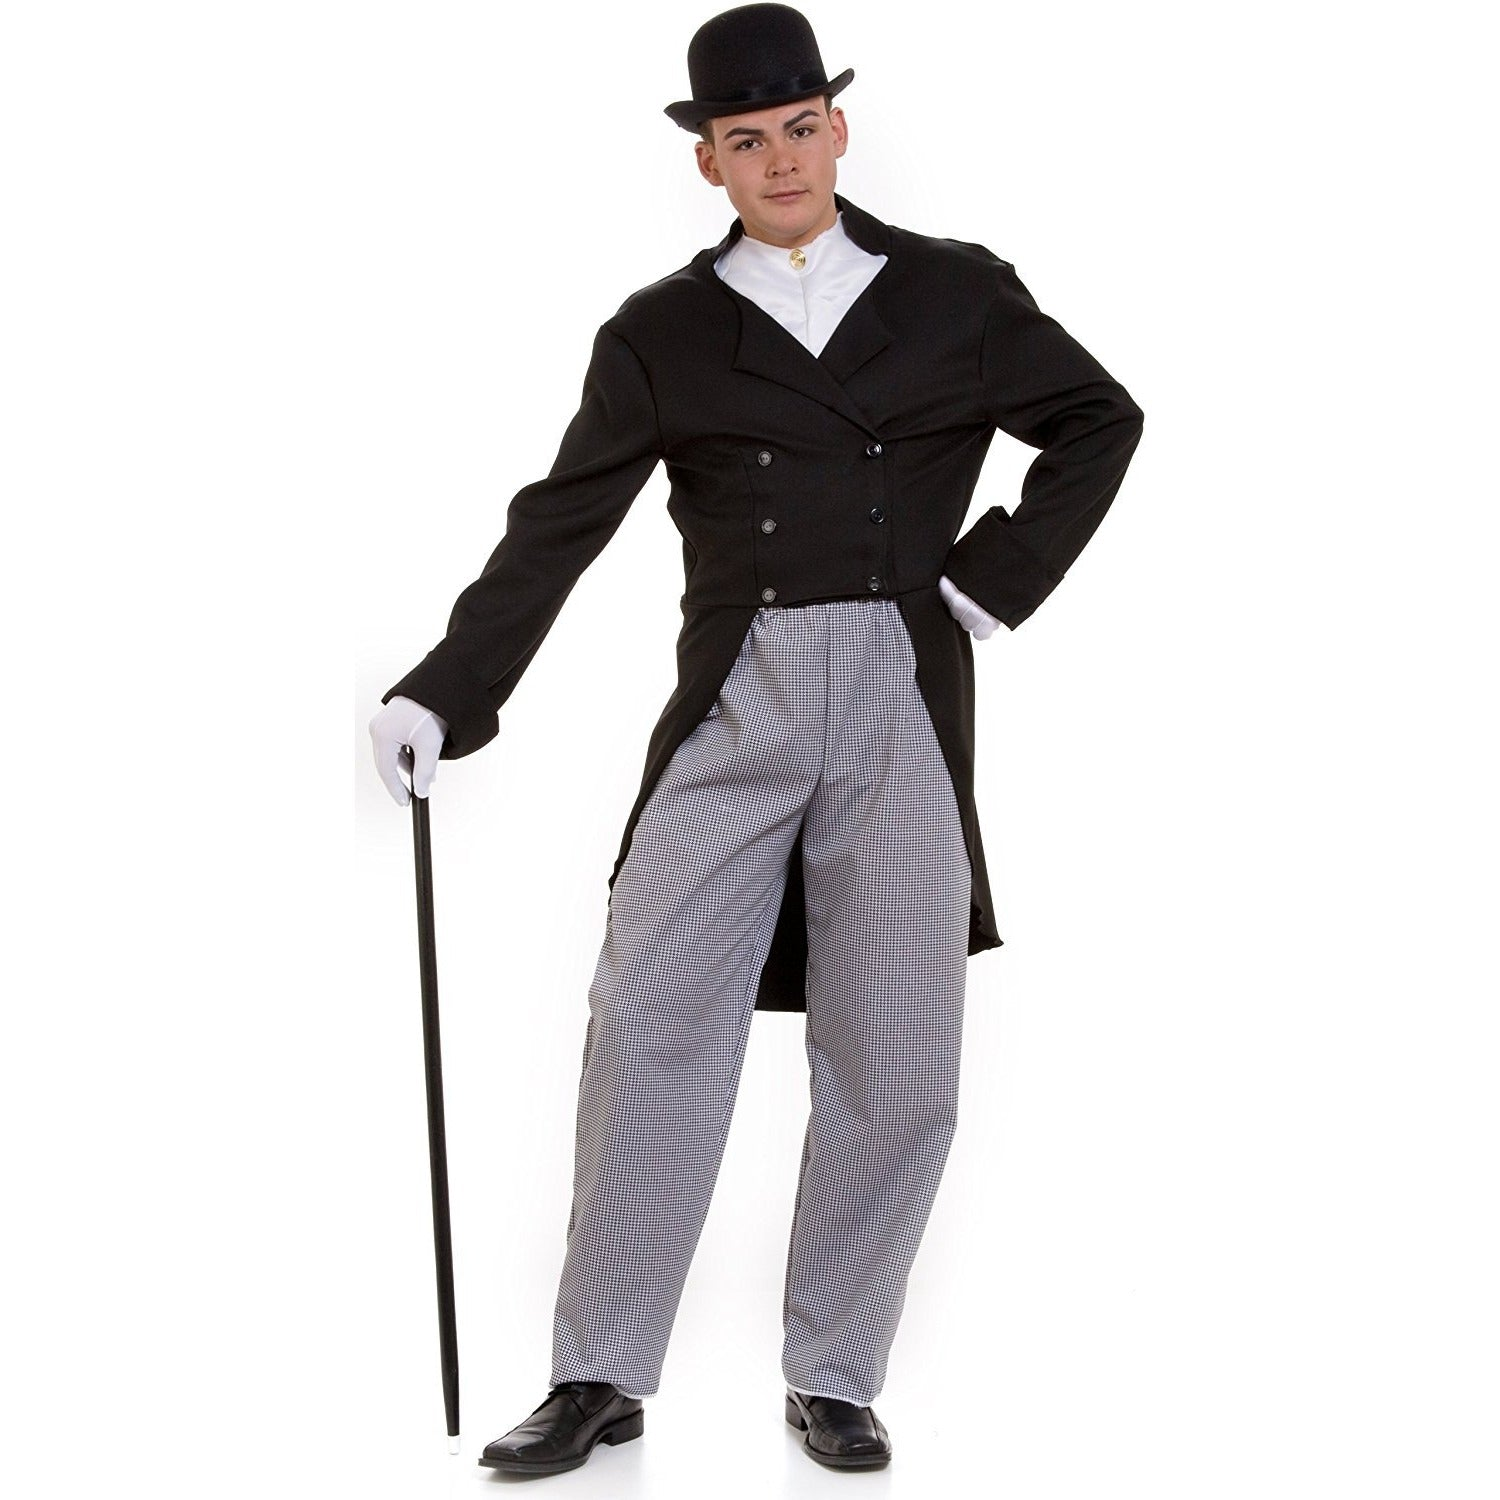 Dr Watson Costume  sc 1 st  Creative Costuming Theater and Halloween Costume Rental and ... & Creative Costuming Theater and Halloween Costume Rental and ...